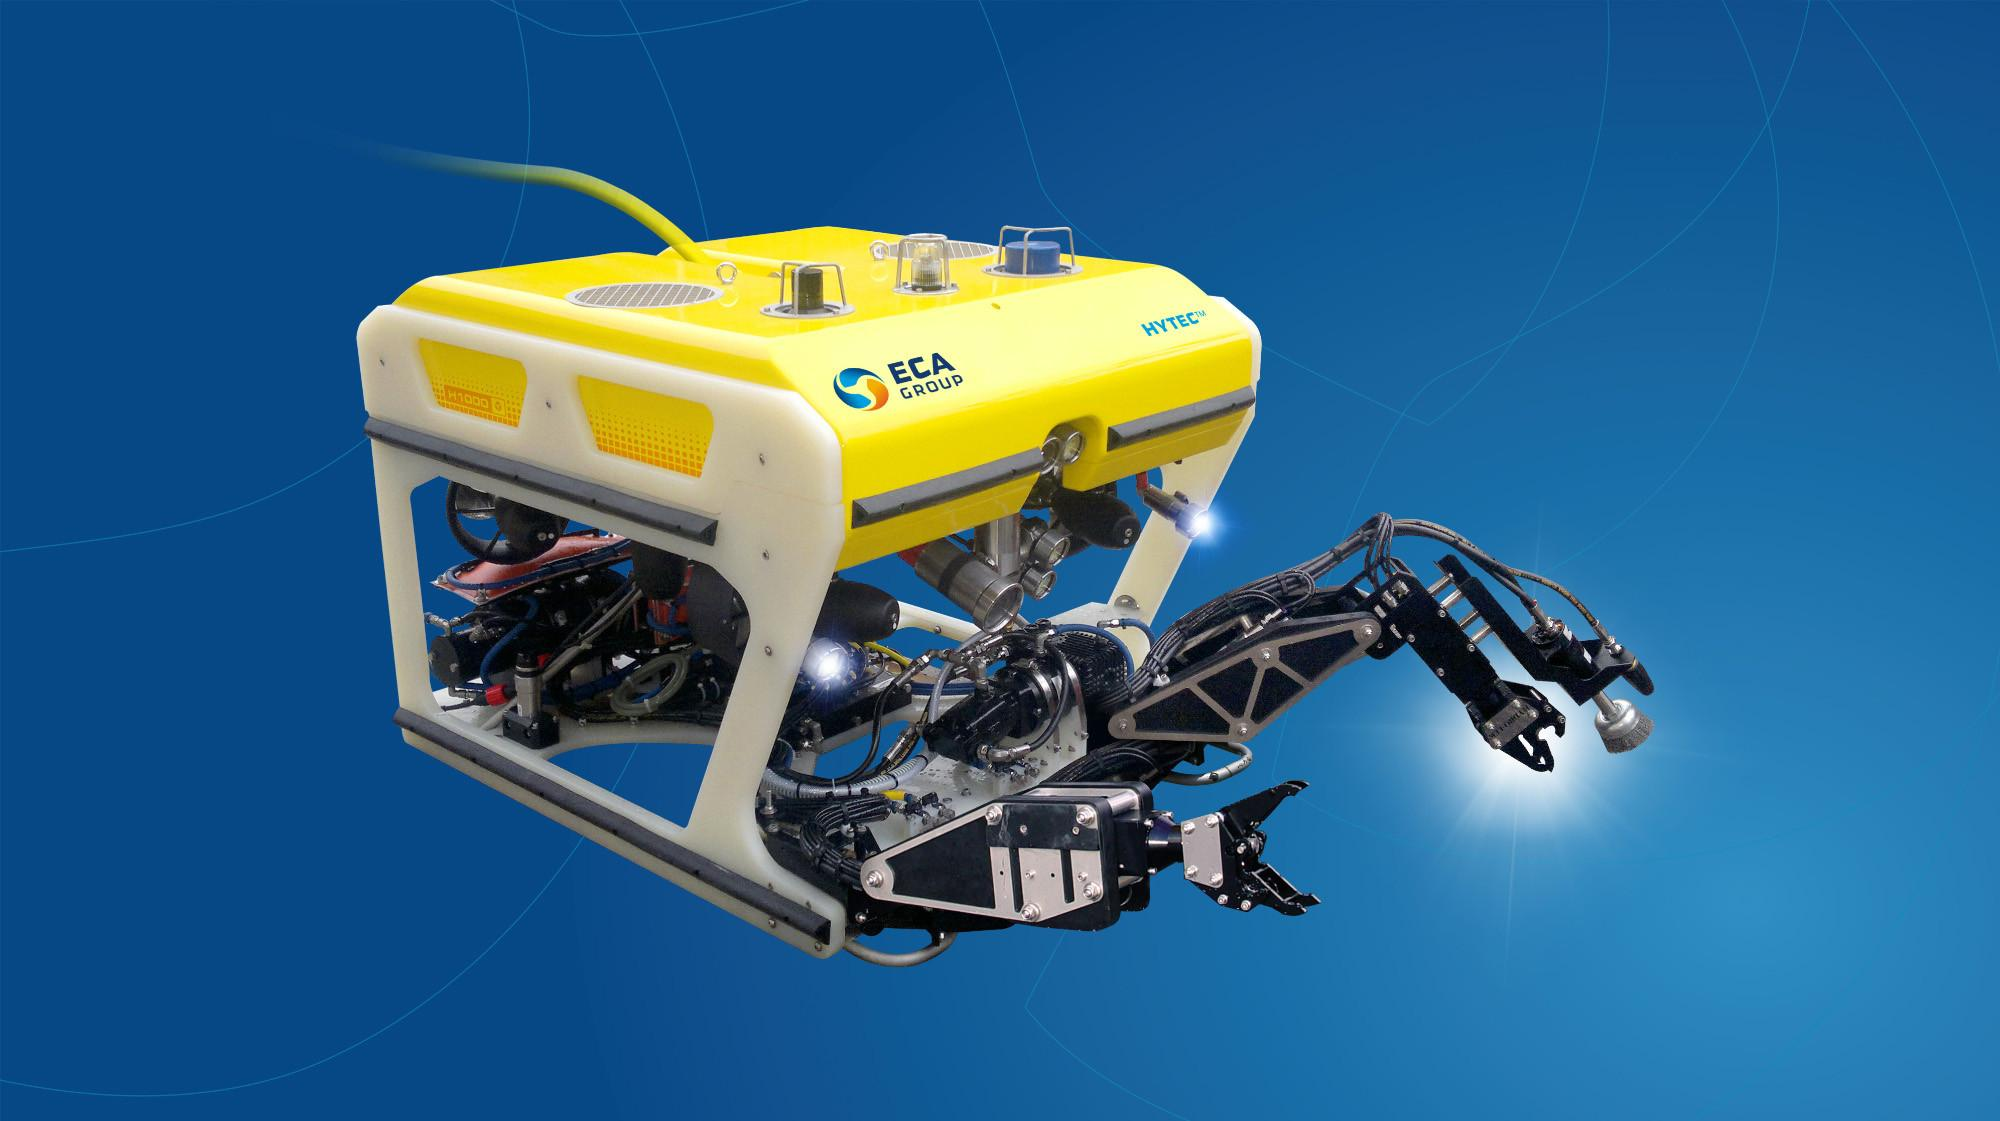 Inspection and Work Class Rovs | Eca Group